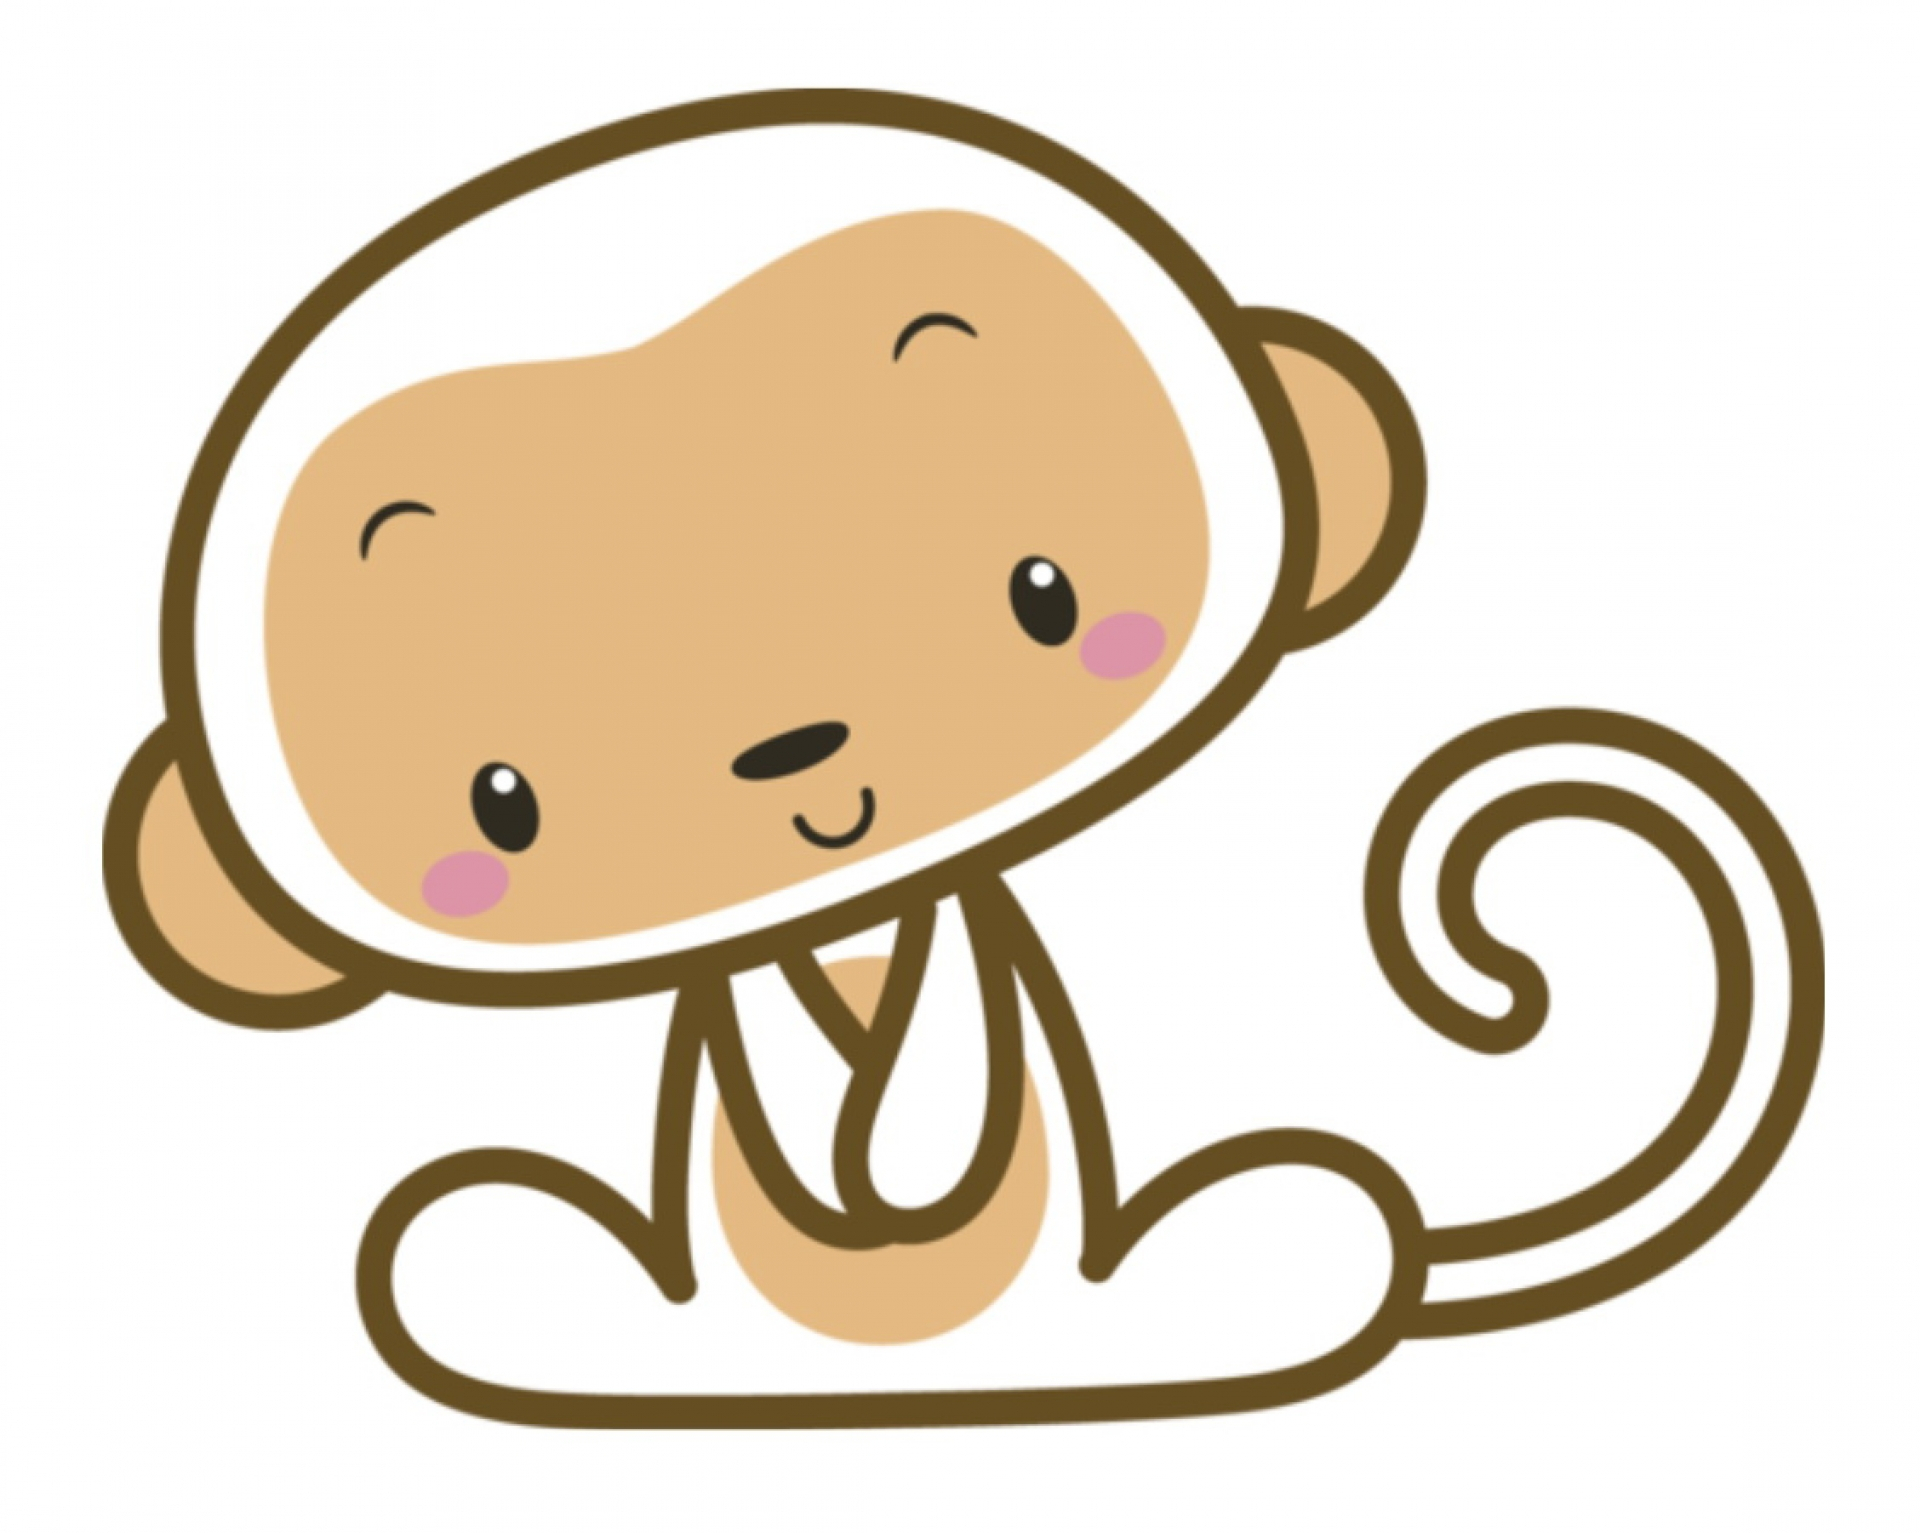 Simple Monkey Face Drawing | Free download on ClipArtMag